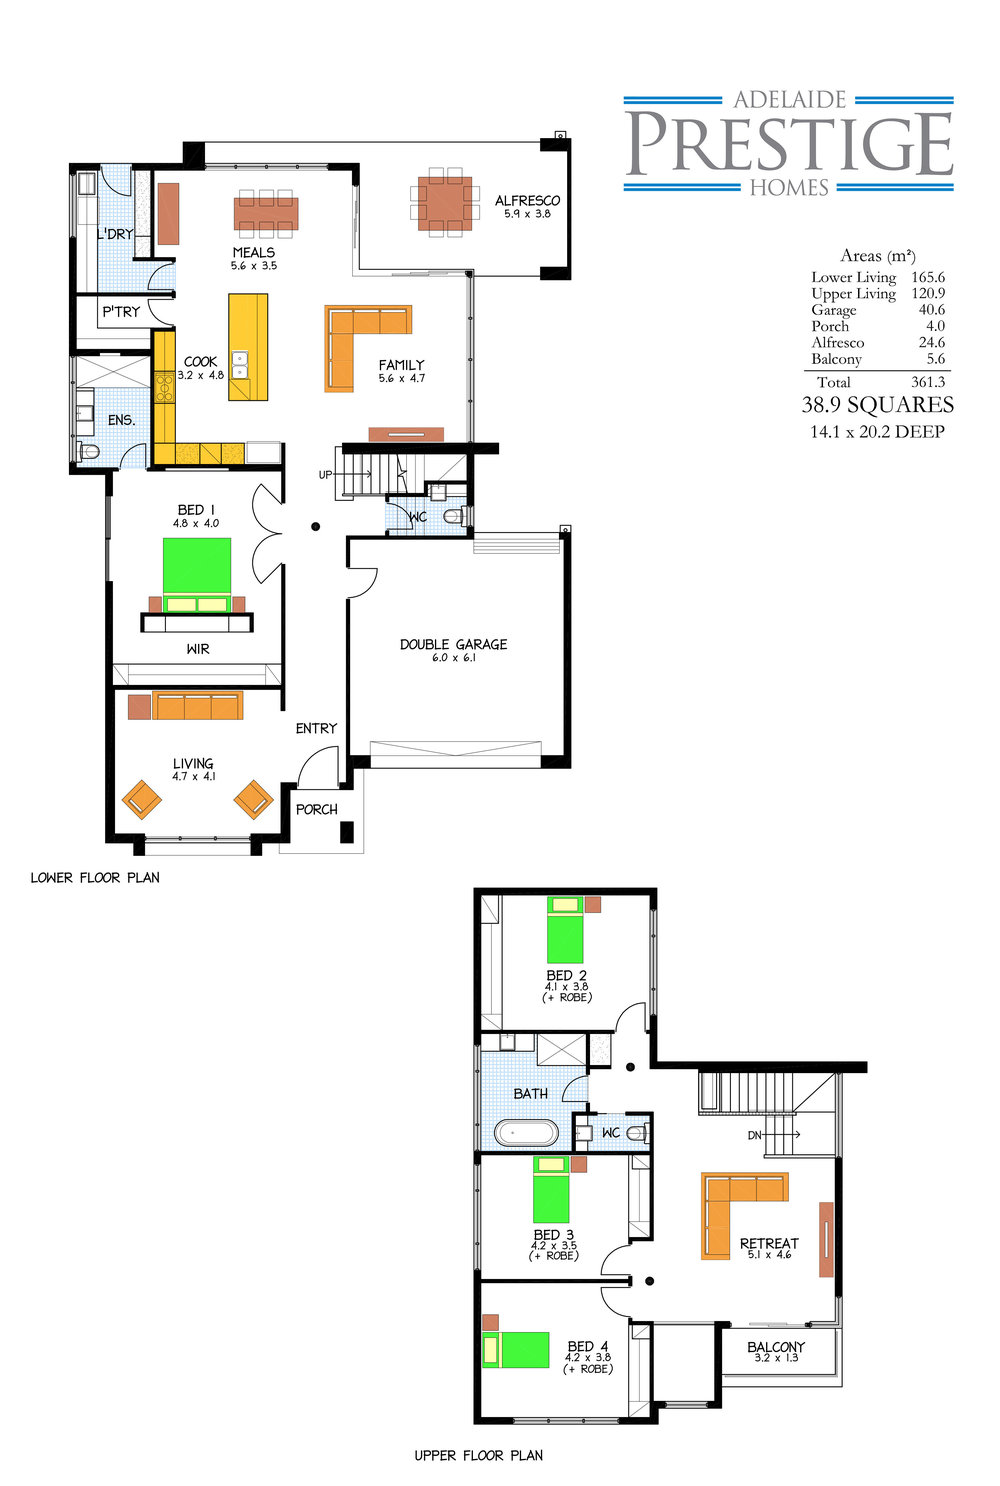 Eden Design - Adelaide Prestige Homes